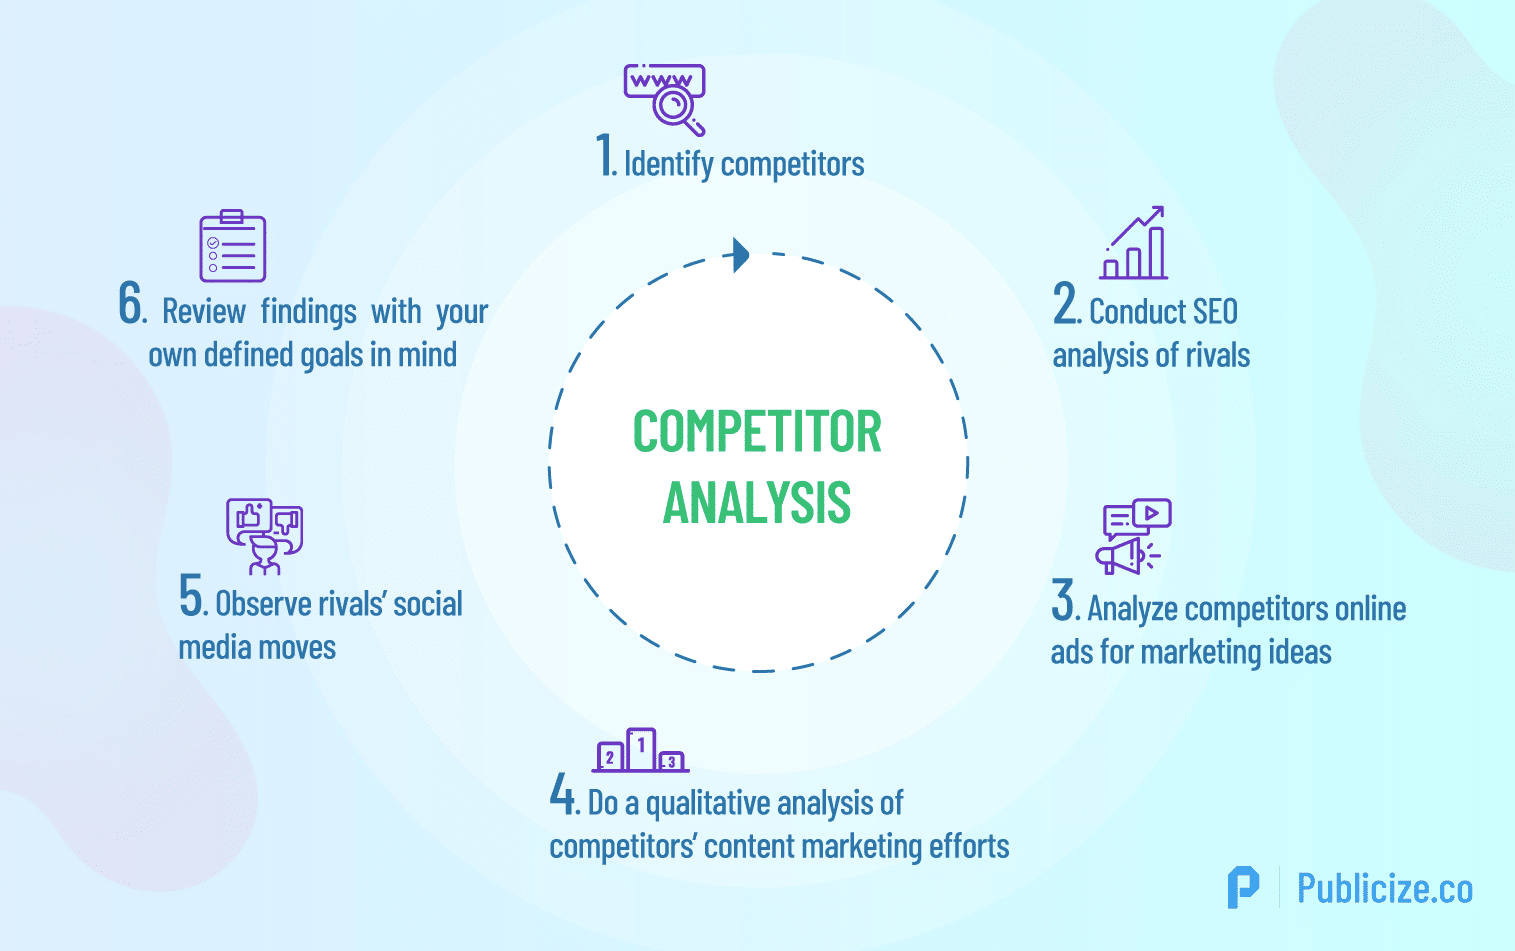 competitors analysis infographic